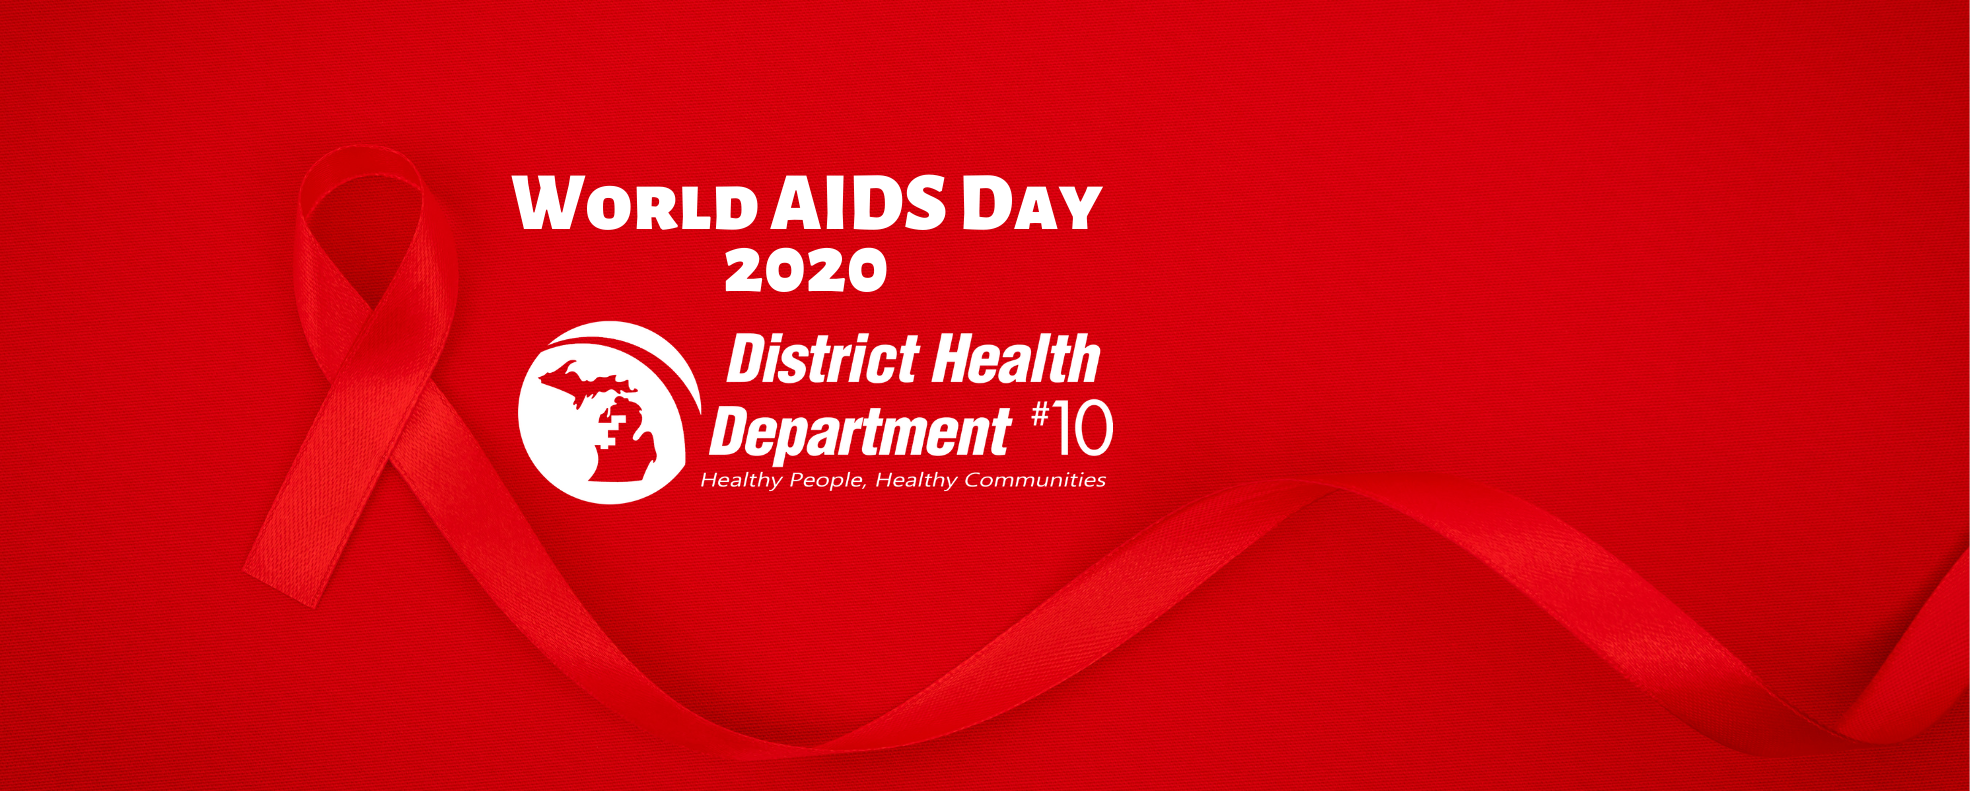 World AIDS Day 2020 DHD#10